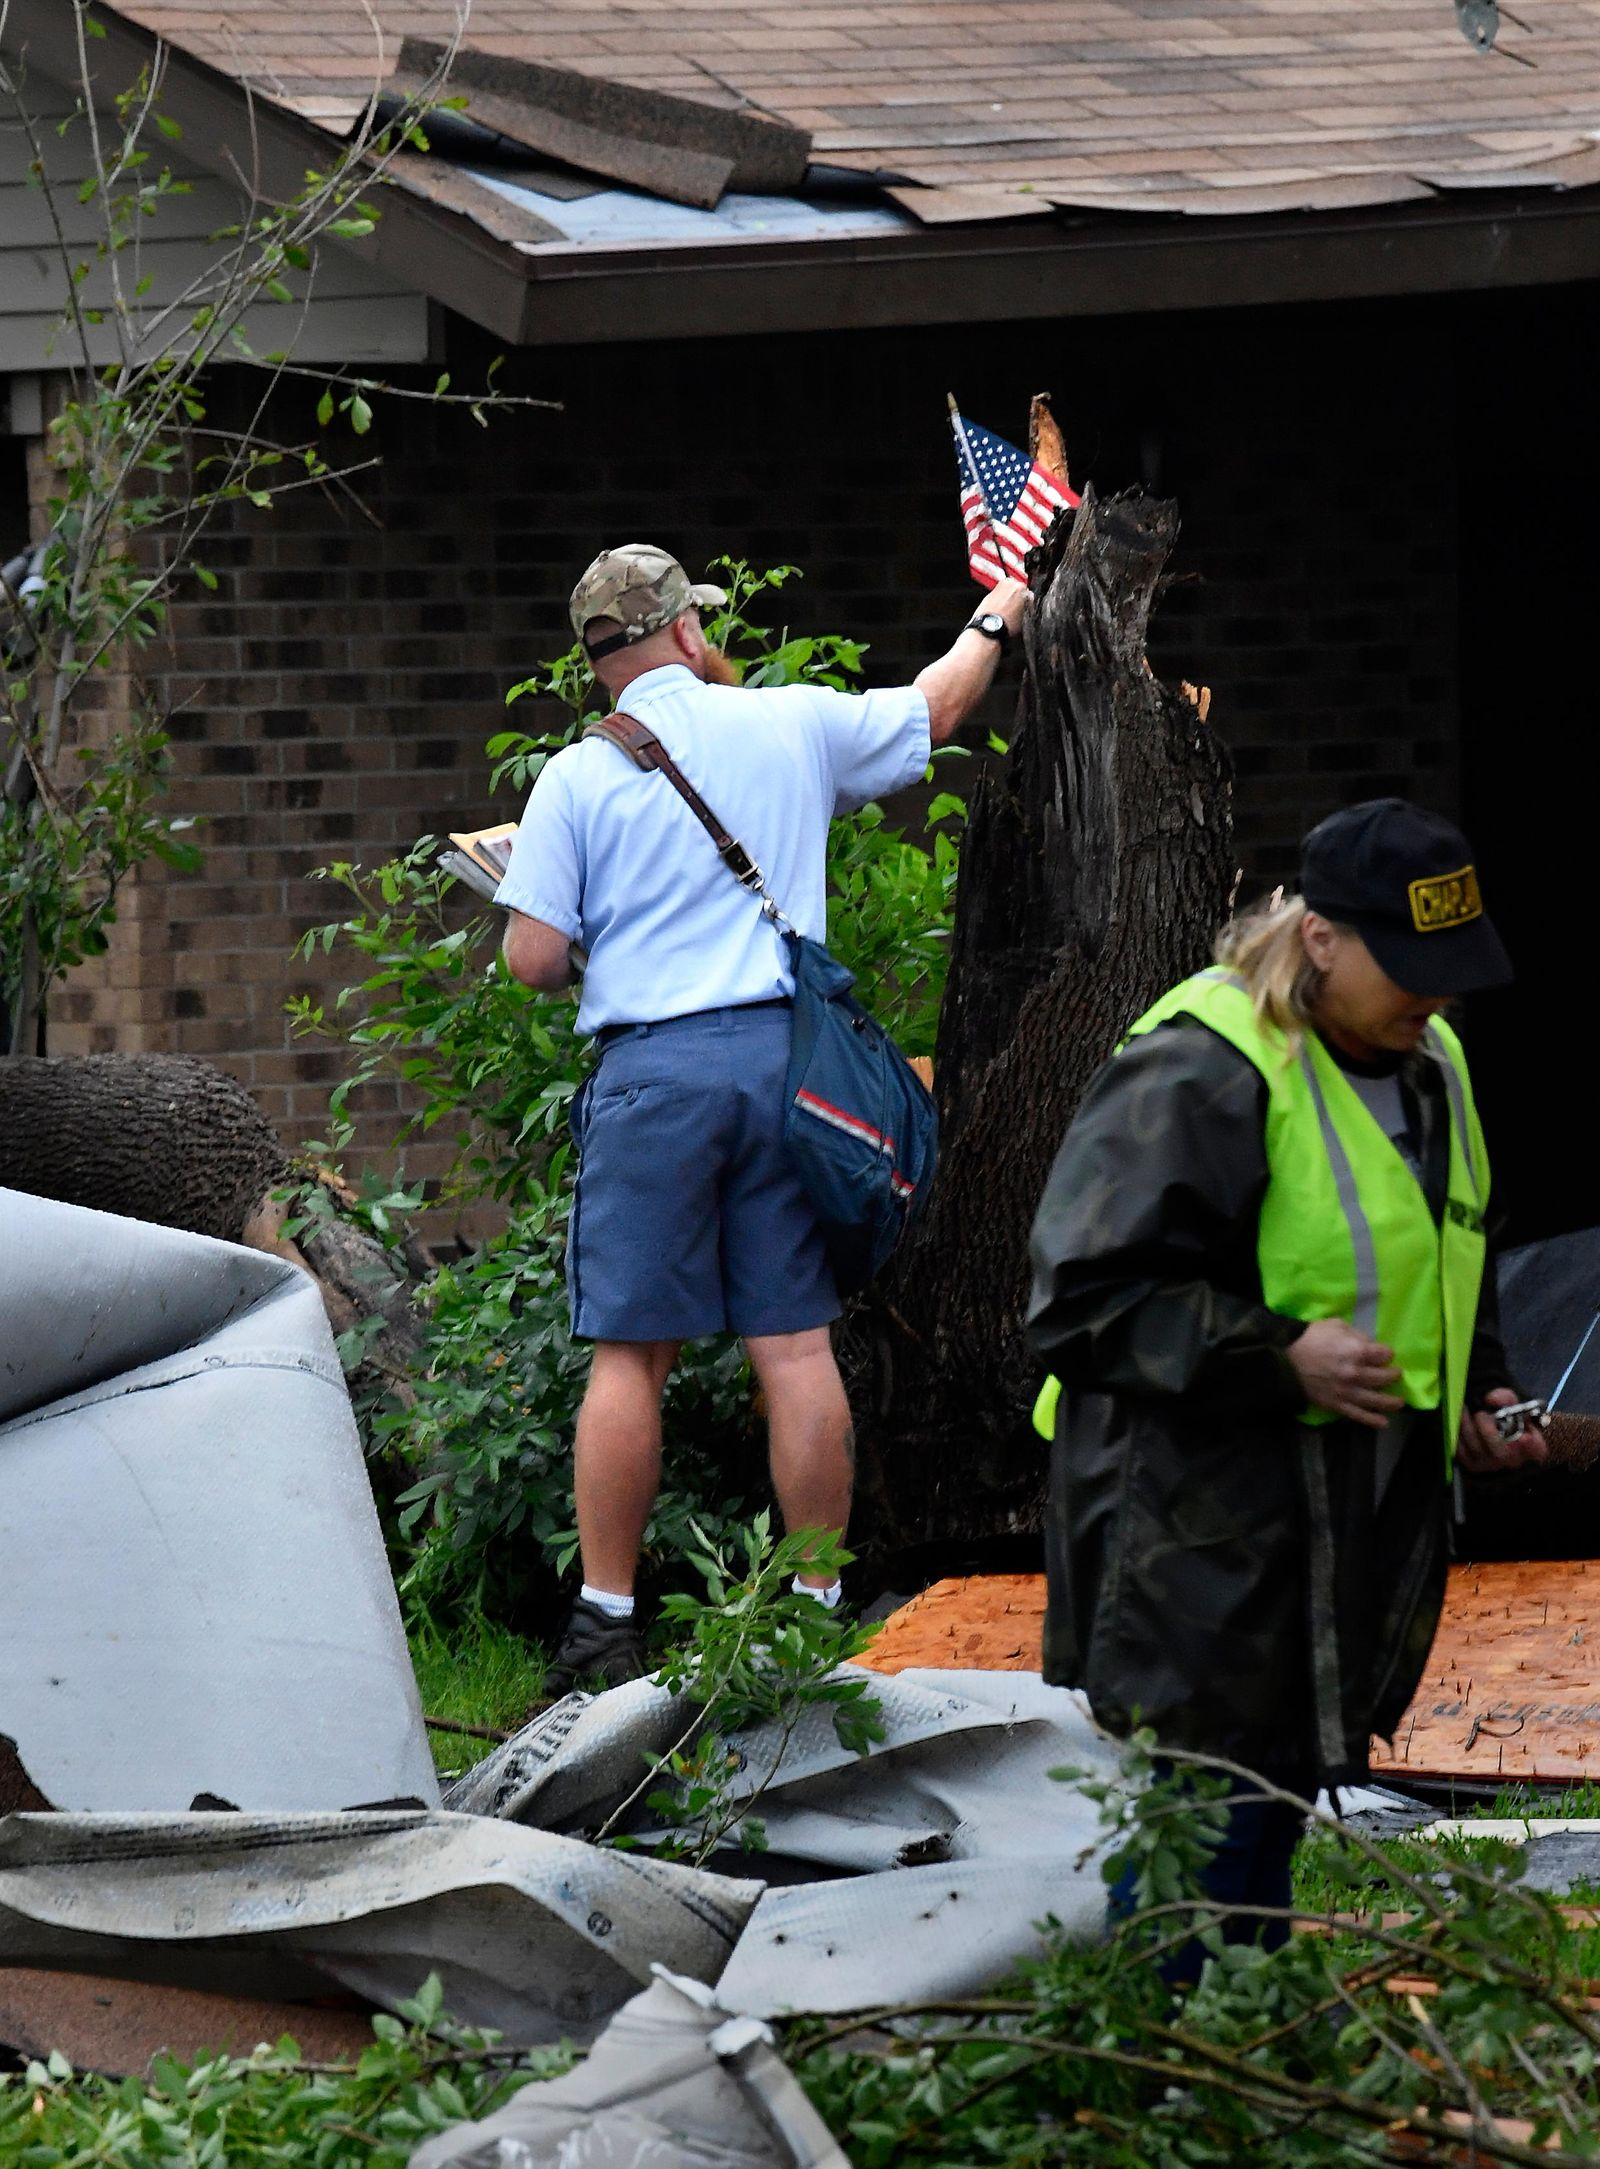 Letter carrier James Hurtado resets a small U.S. flag into a tree stump while delivering the mail Saturday May 18, 2019 on S. 6th St. in Abilene. Strong winds decimated the area in the early morning hours. AP photo by Ronald W. Erdrich, Abilene Reporter-News. Credit must appear./The Abilene Reporter-News via AP)